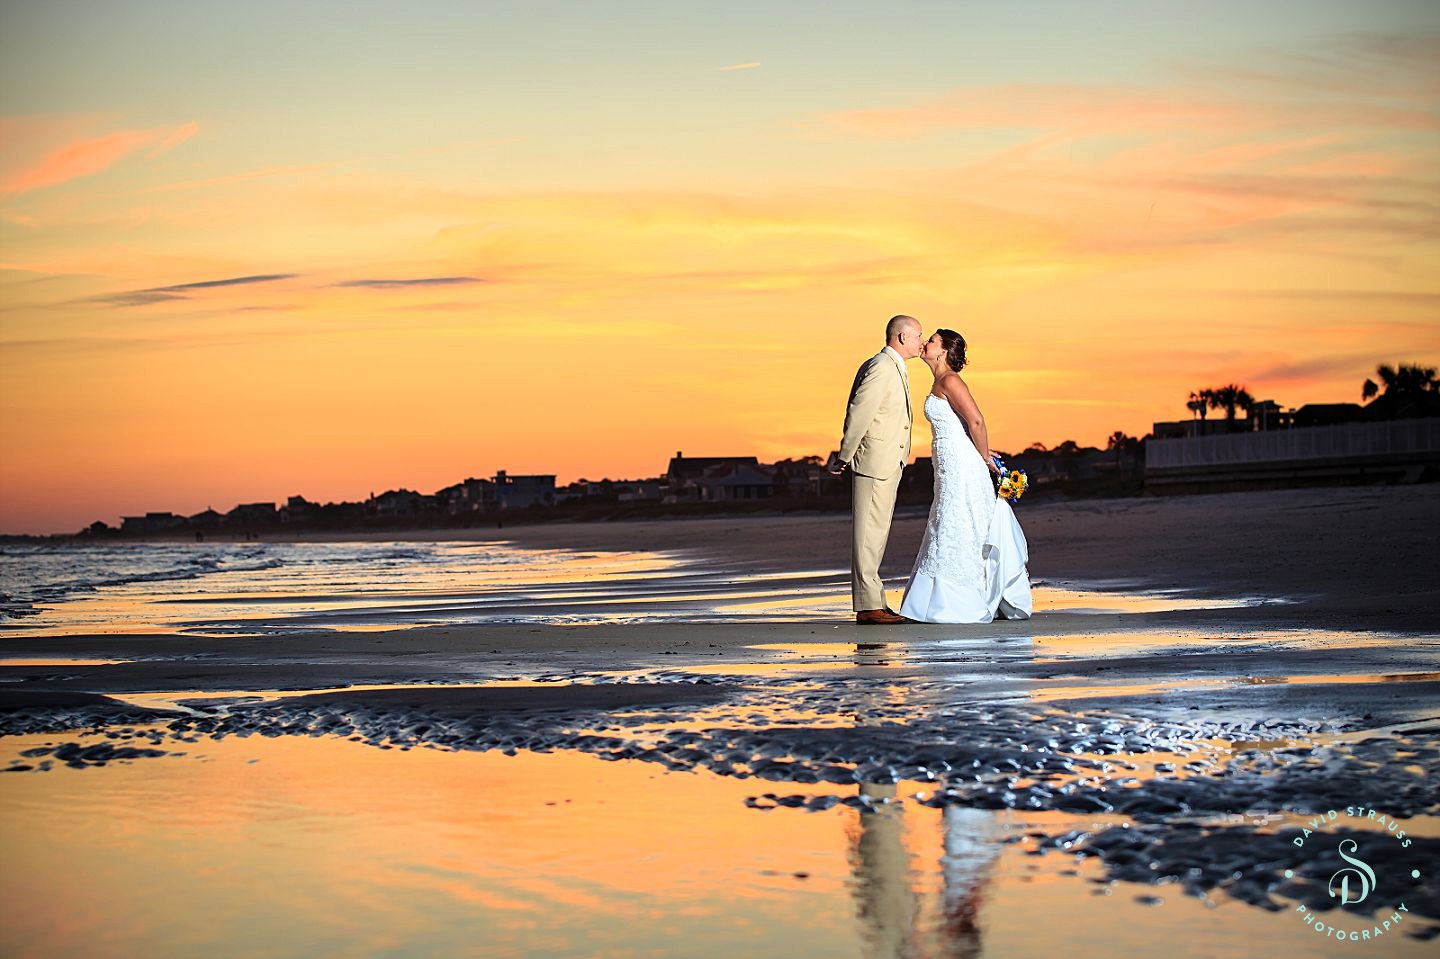 Beach Wedding Sunset Folly Photography Brenna And David